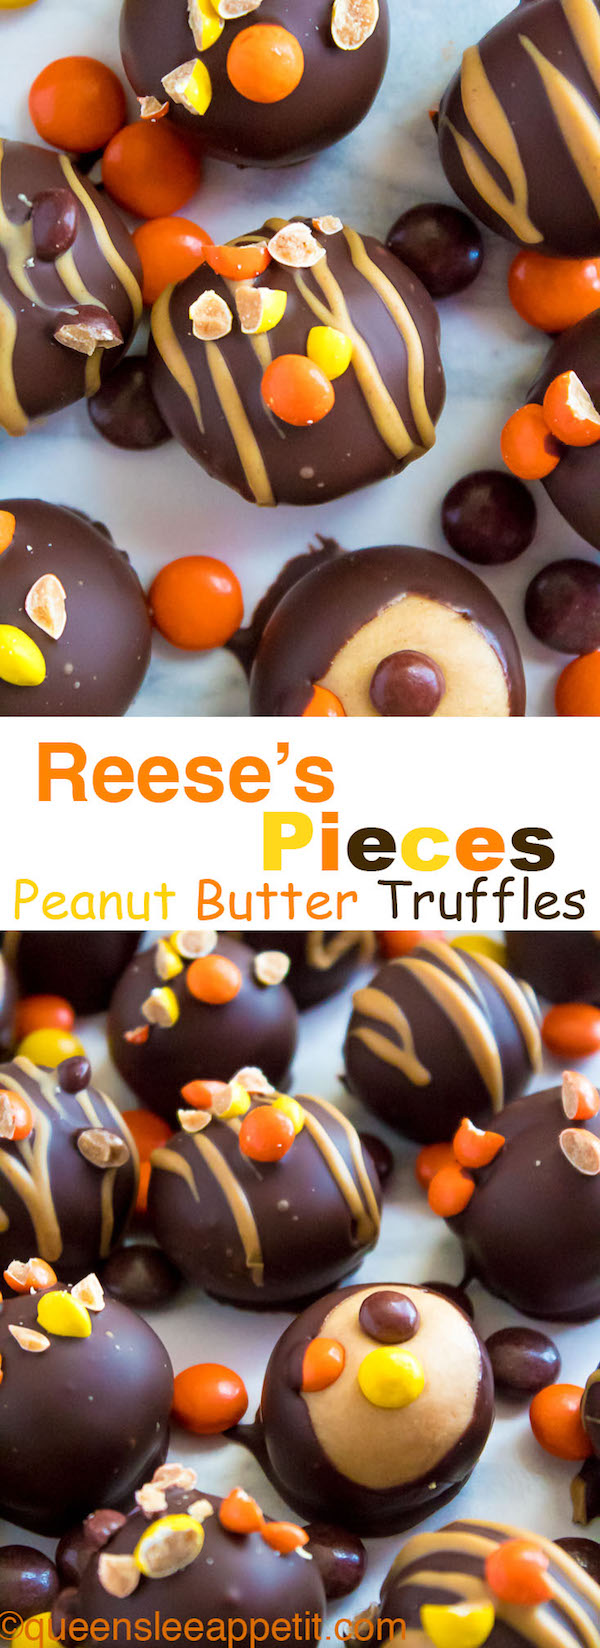 Reese's Pieces Peanut Butter Truffles— smooth and creamy peanut butter balls, loaded with mini Reese's Pieces, coated with dark chocolate and drizzled with melted peanut butter!